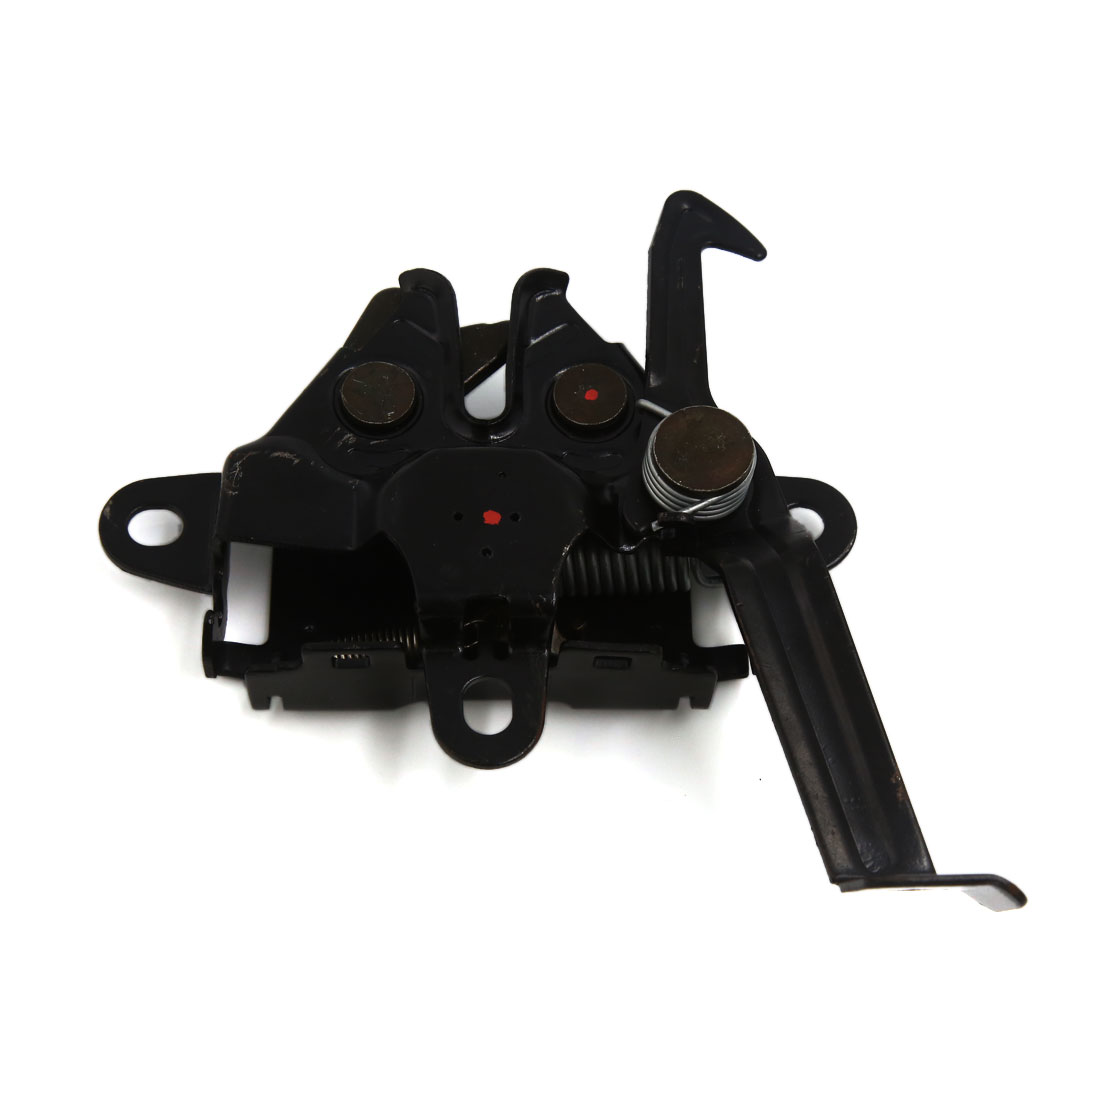 Black Engine Hood Lid Latch Lock Actuator Assembly 53510-33201 for 05 Toyota Camry